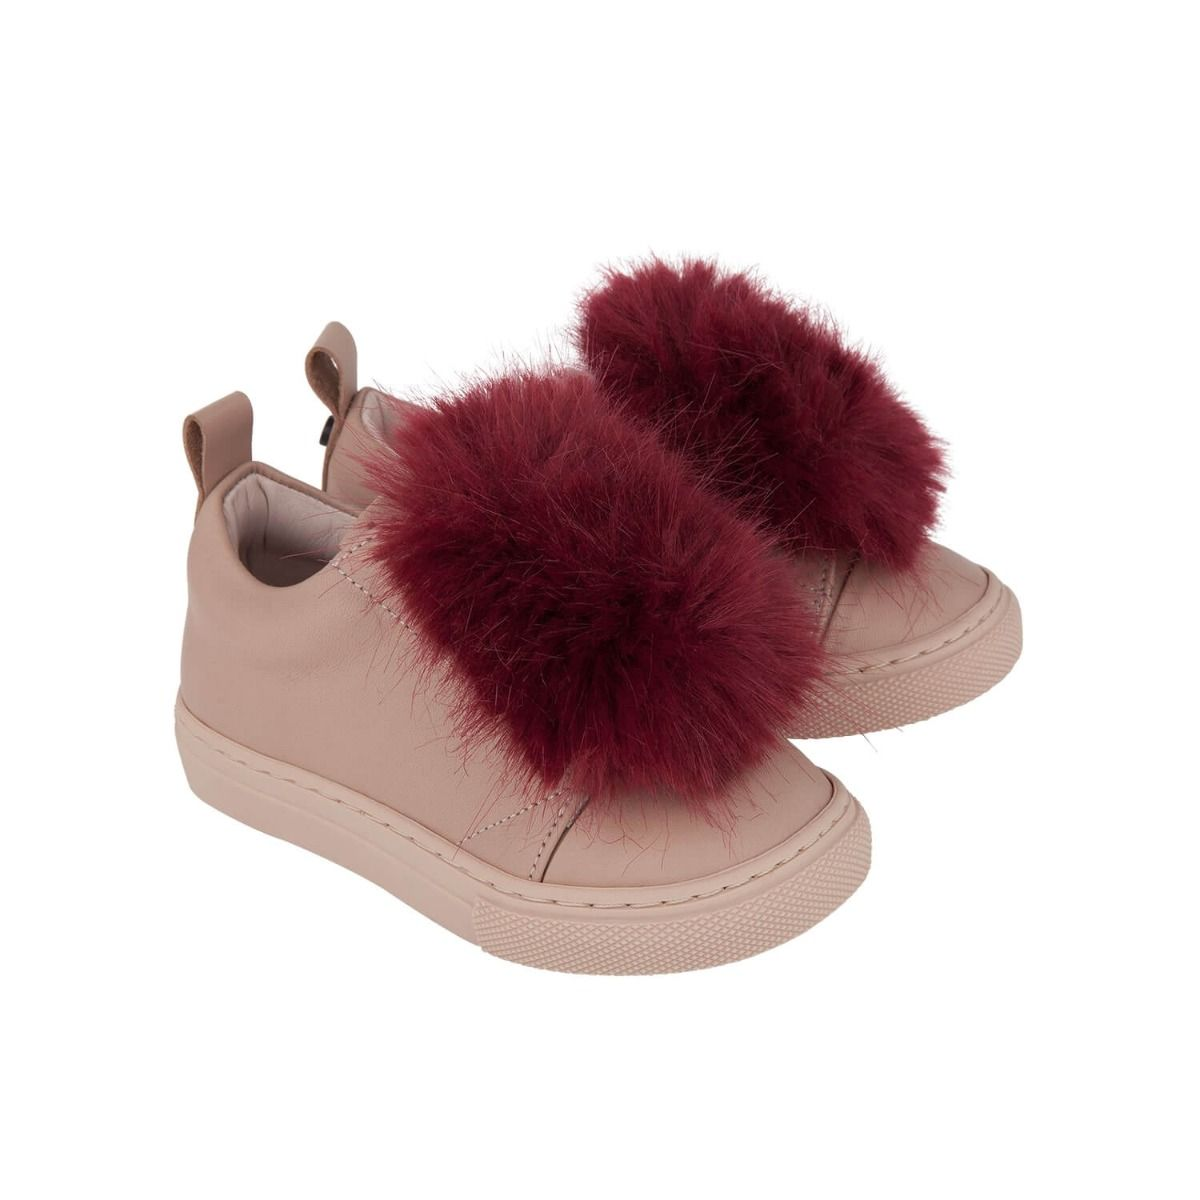 Baby and girl's sneakers in pale pink leather with dark red faux fur applique